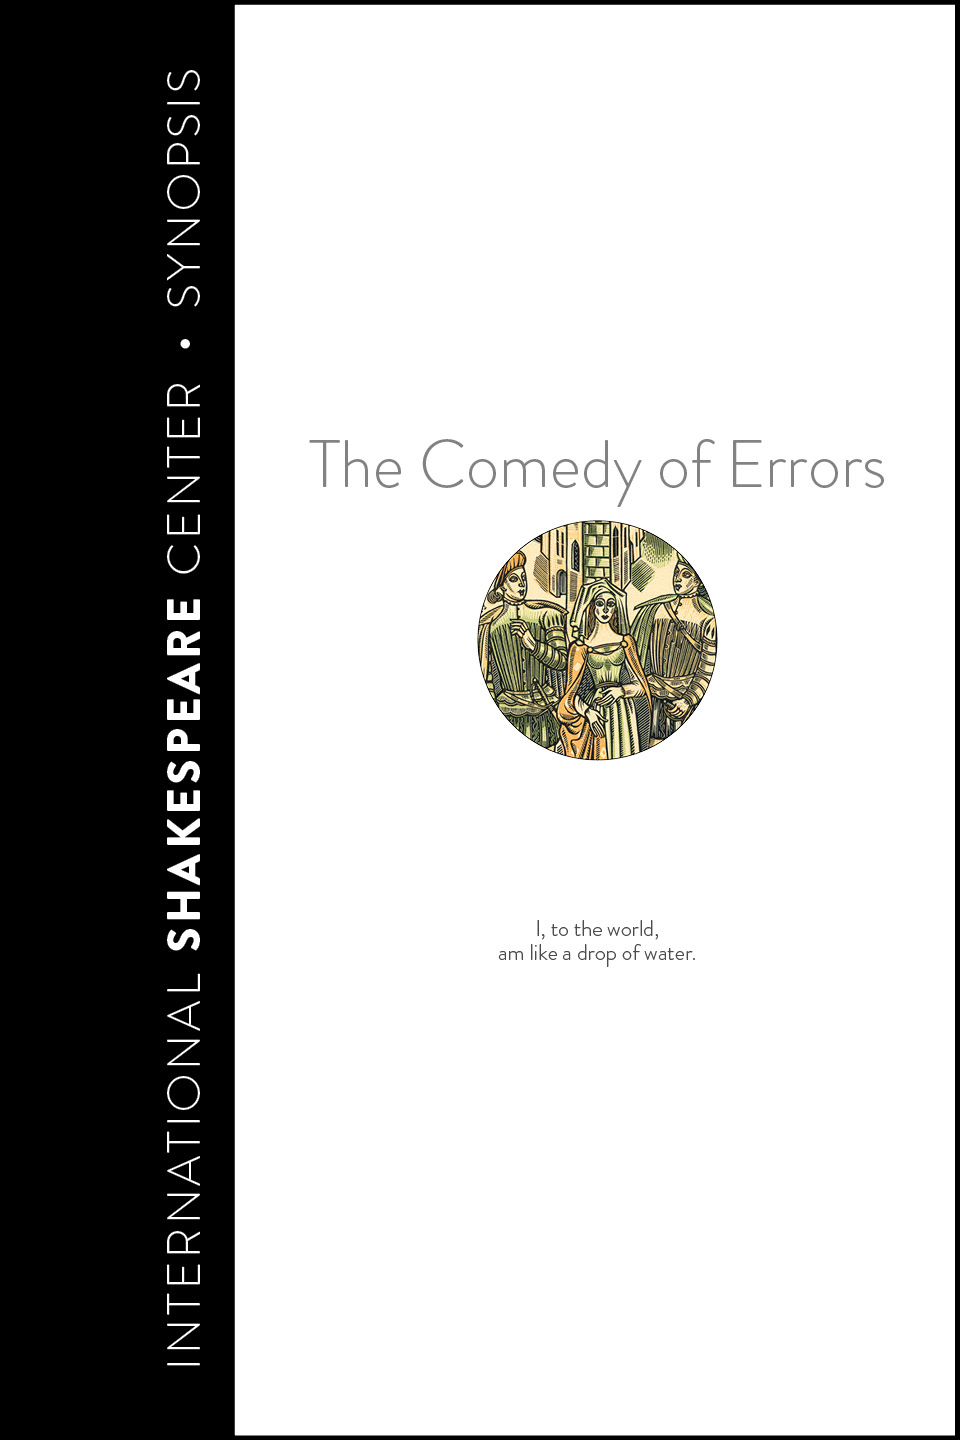 Comedy of Errors • i Read Shakespeare • International Shakespeare Center Santa Fe • Robin Williams